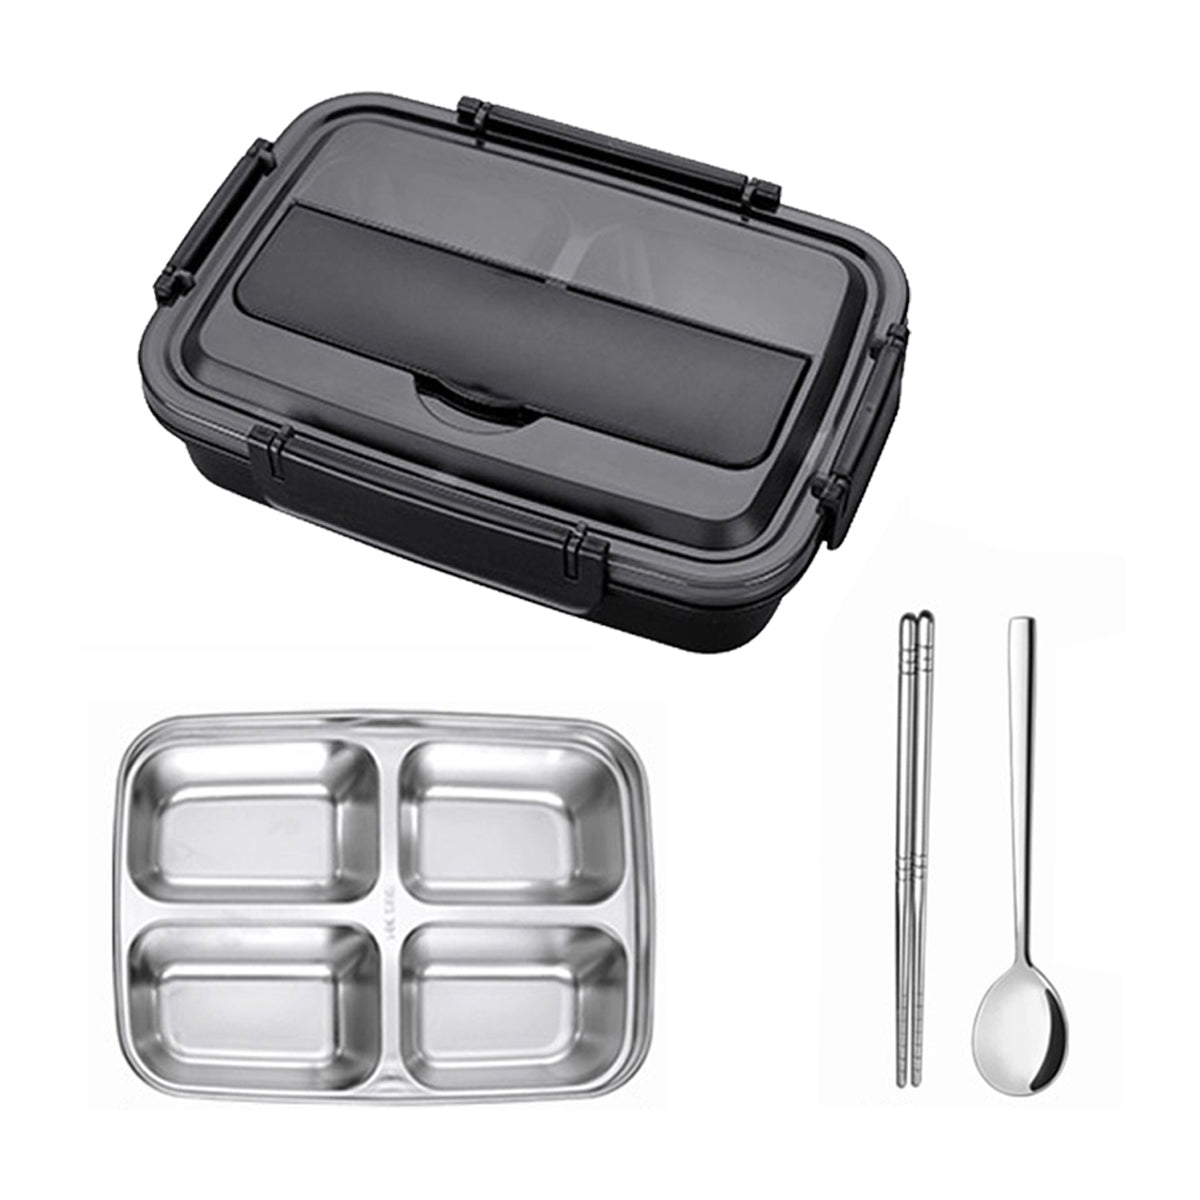 HYTX 4 Compartment Stainless Steel Bento Lunch Container with Spoon and Chopsticks